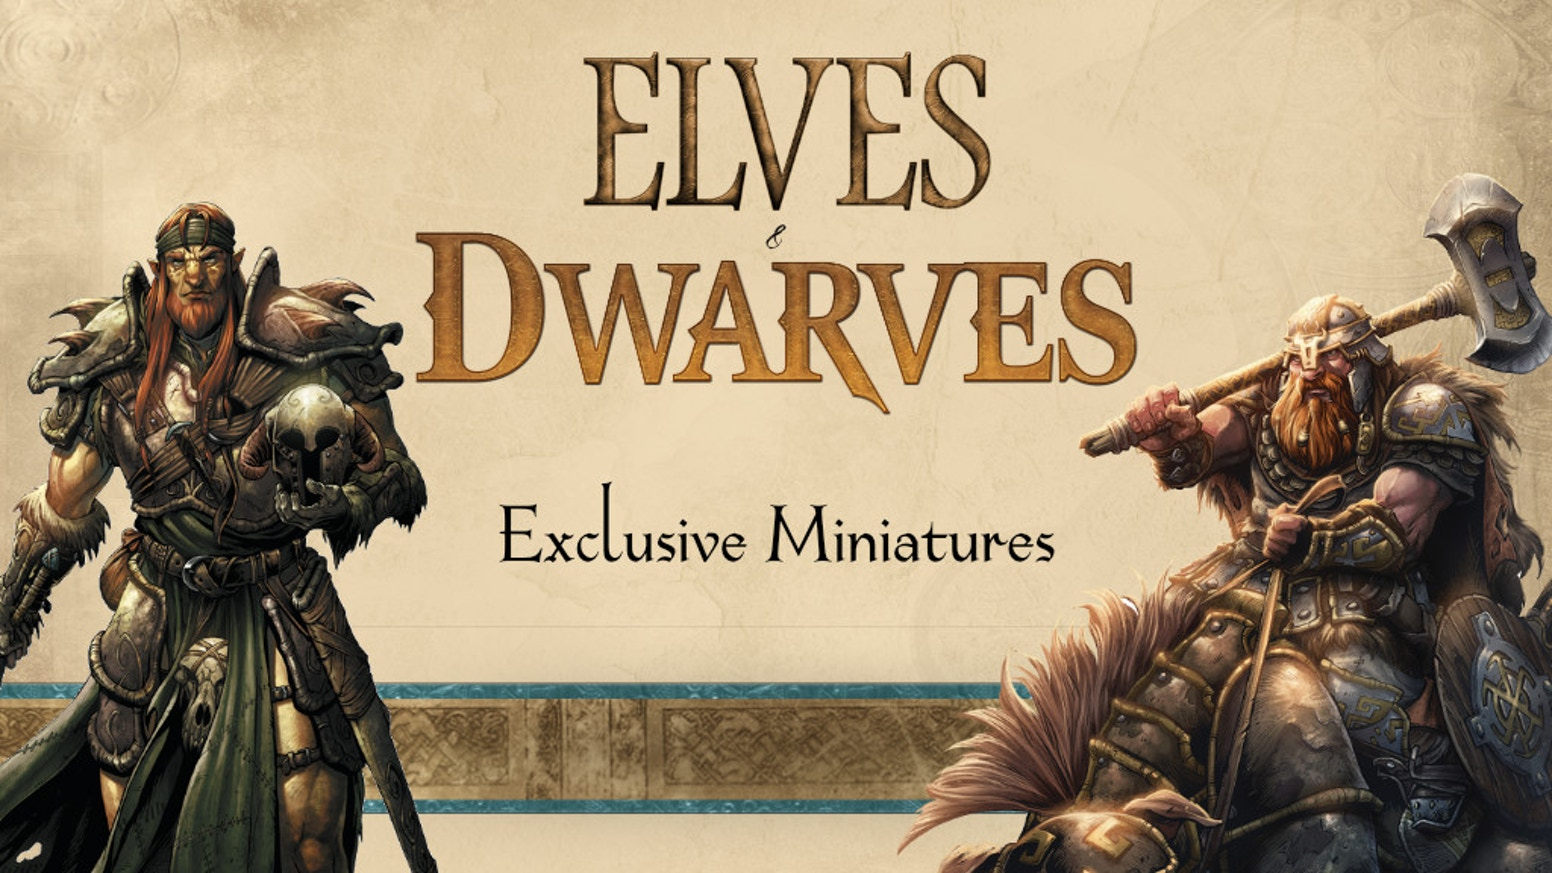 """One-Shot"" campaign for 54mm scale KS Exclusive Miniatures from the universe of Elves and Dwarves of the Lands of Arran."